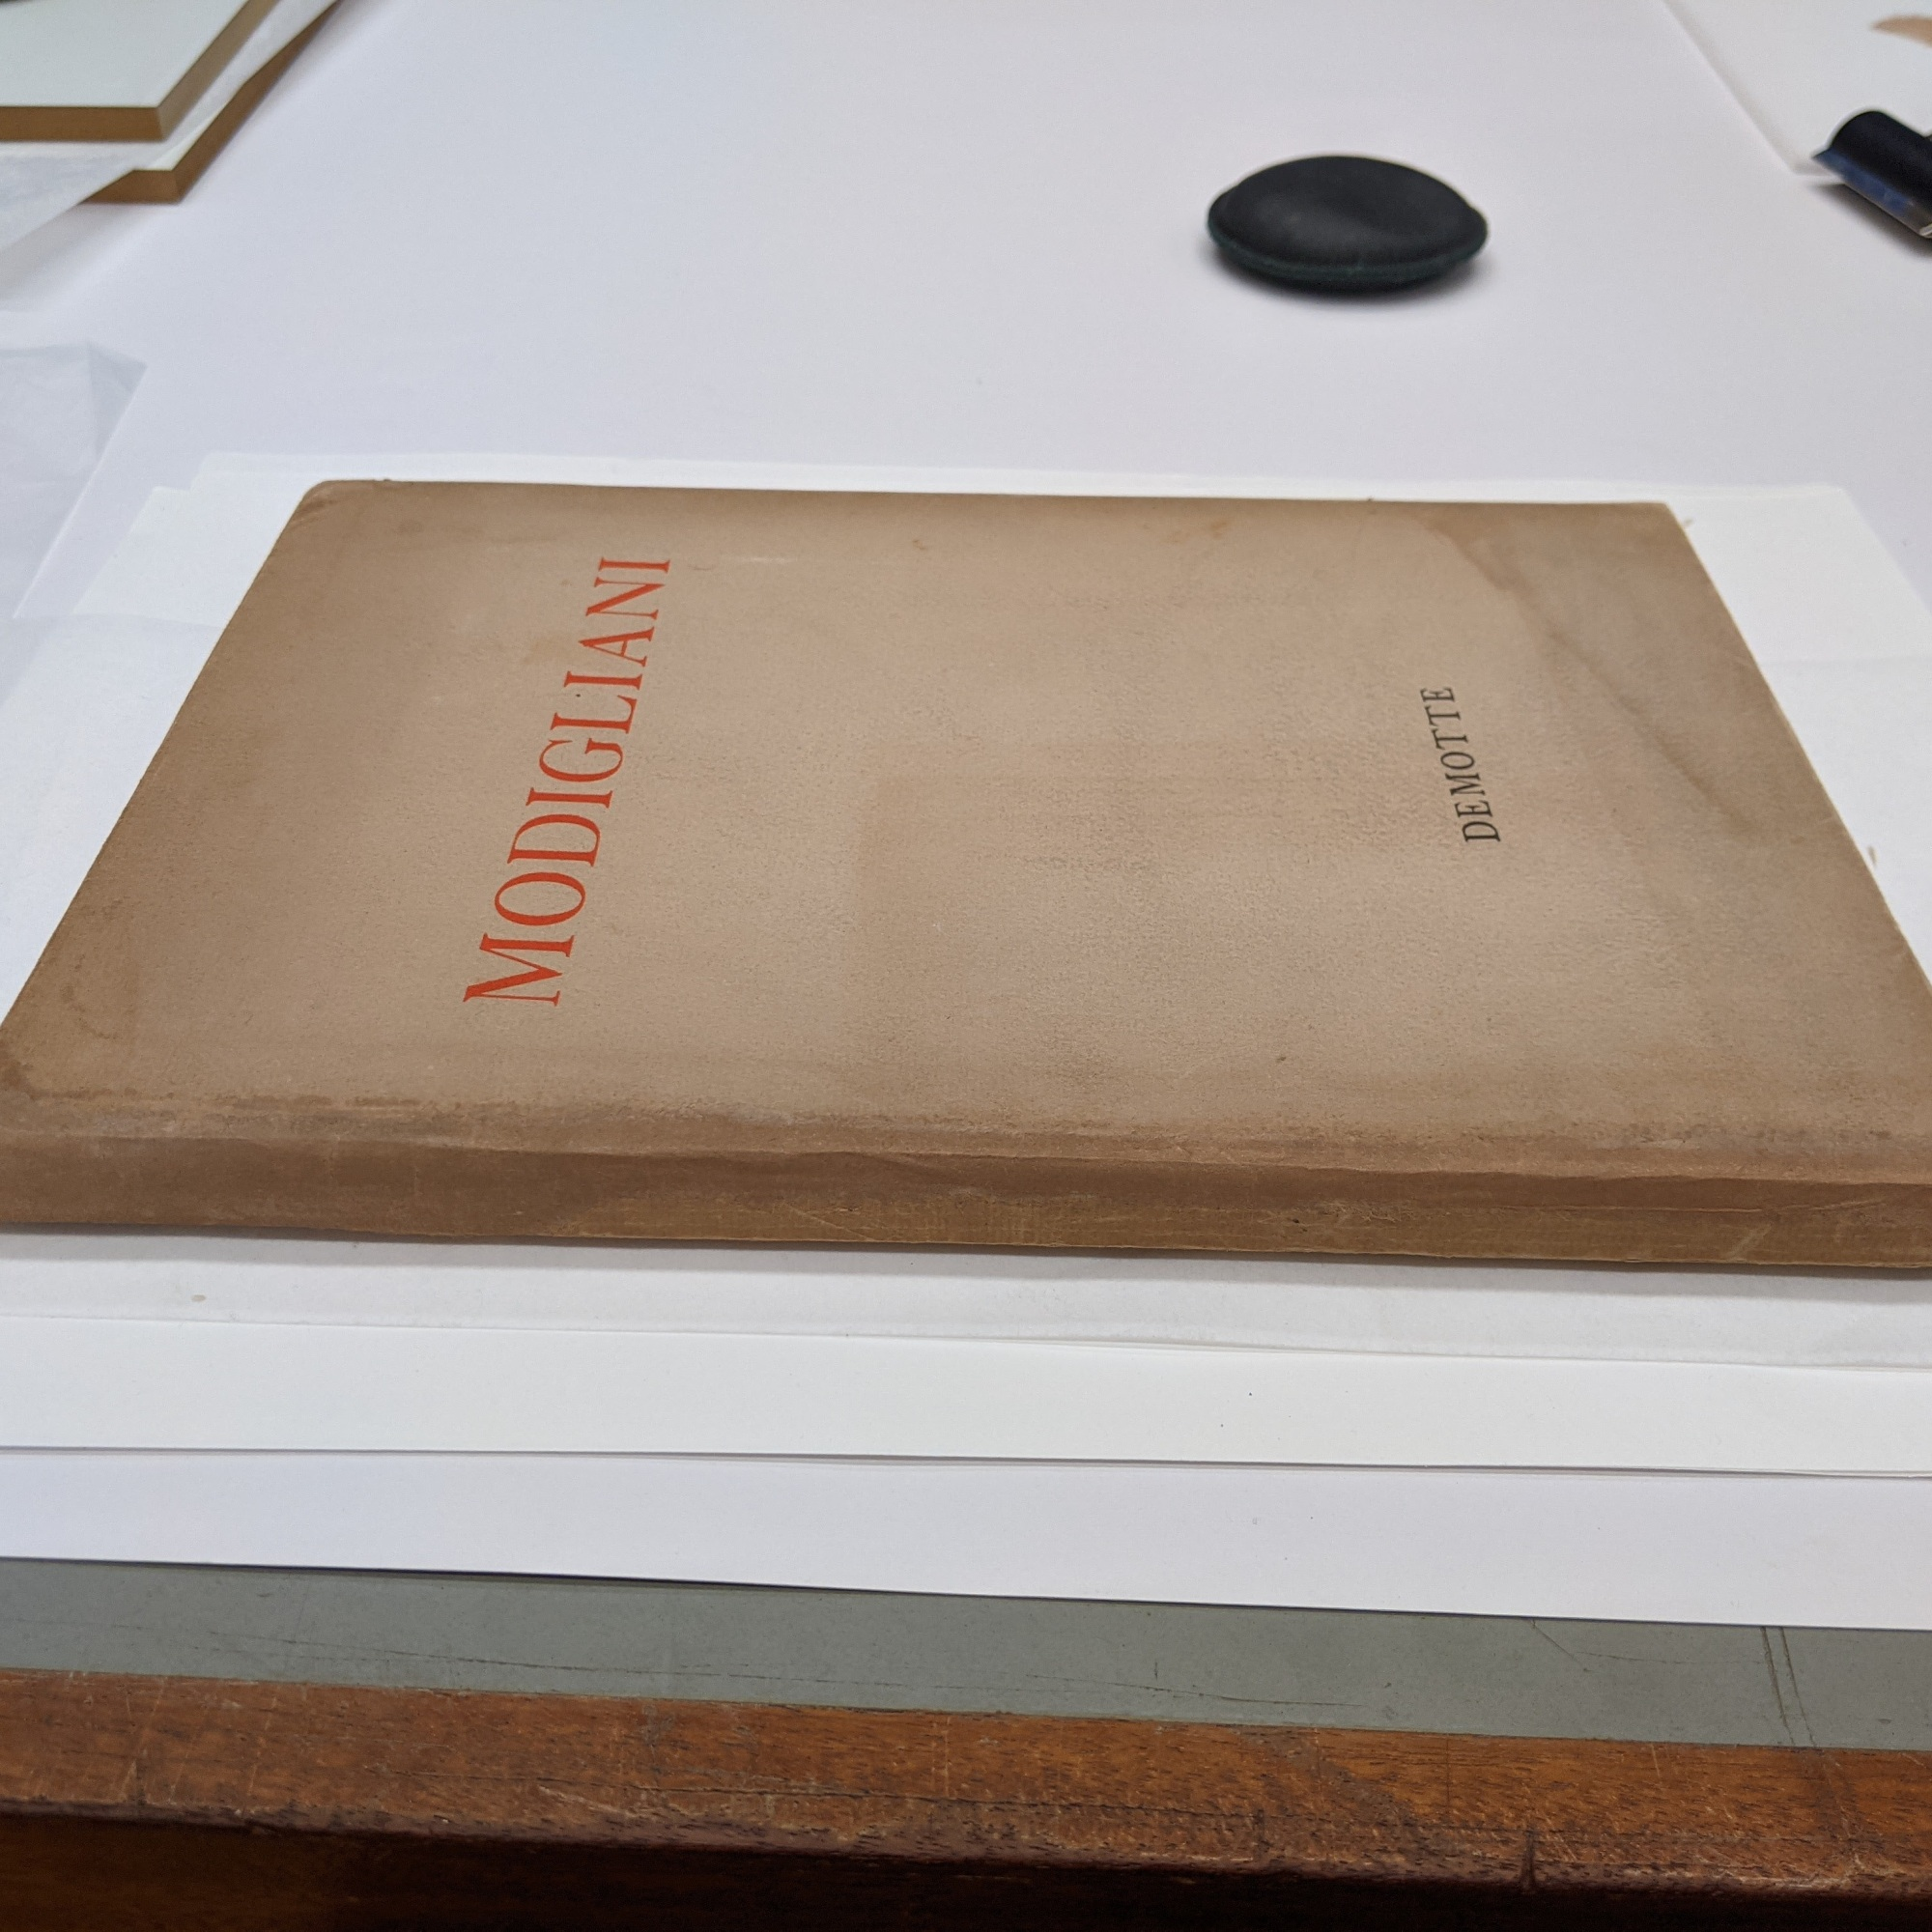 The image shows the finished dust jacket after treatment. The losses have been infilled with toned Japanese paper so that it blends in with the original paper.